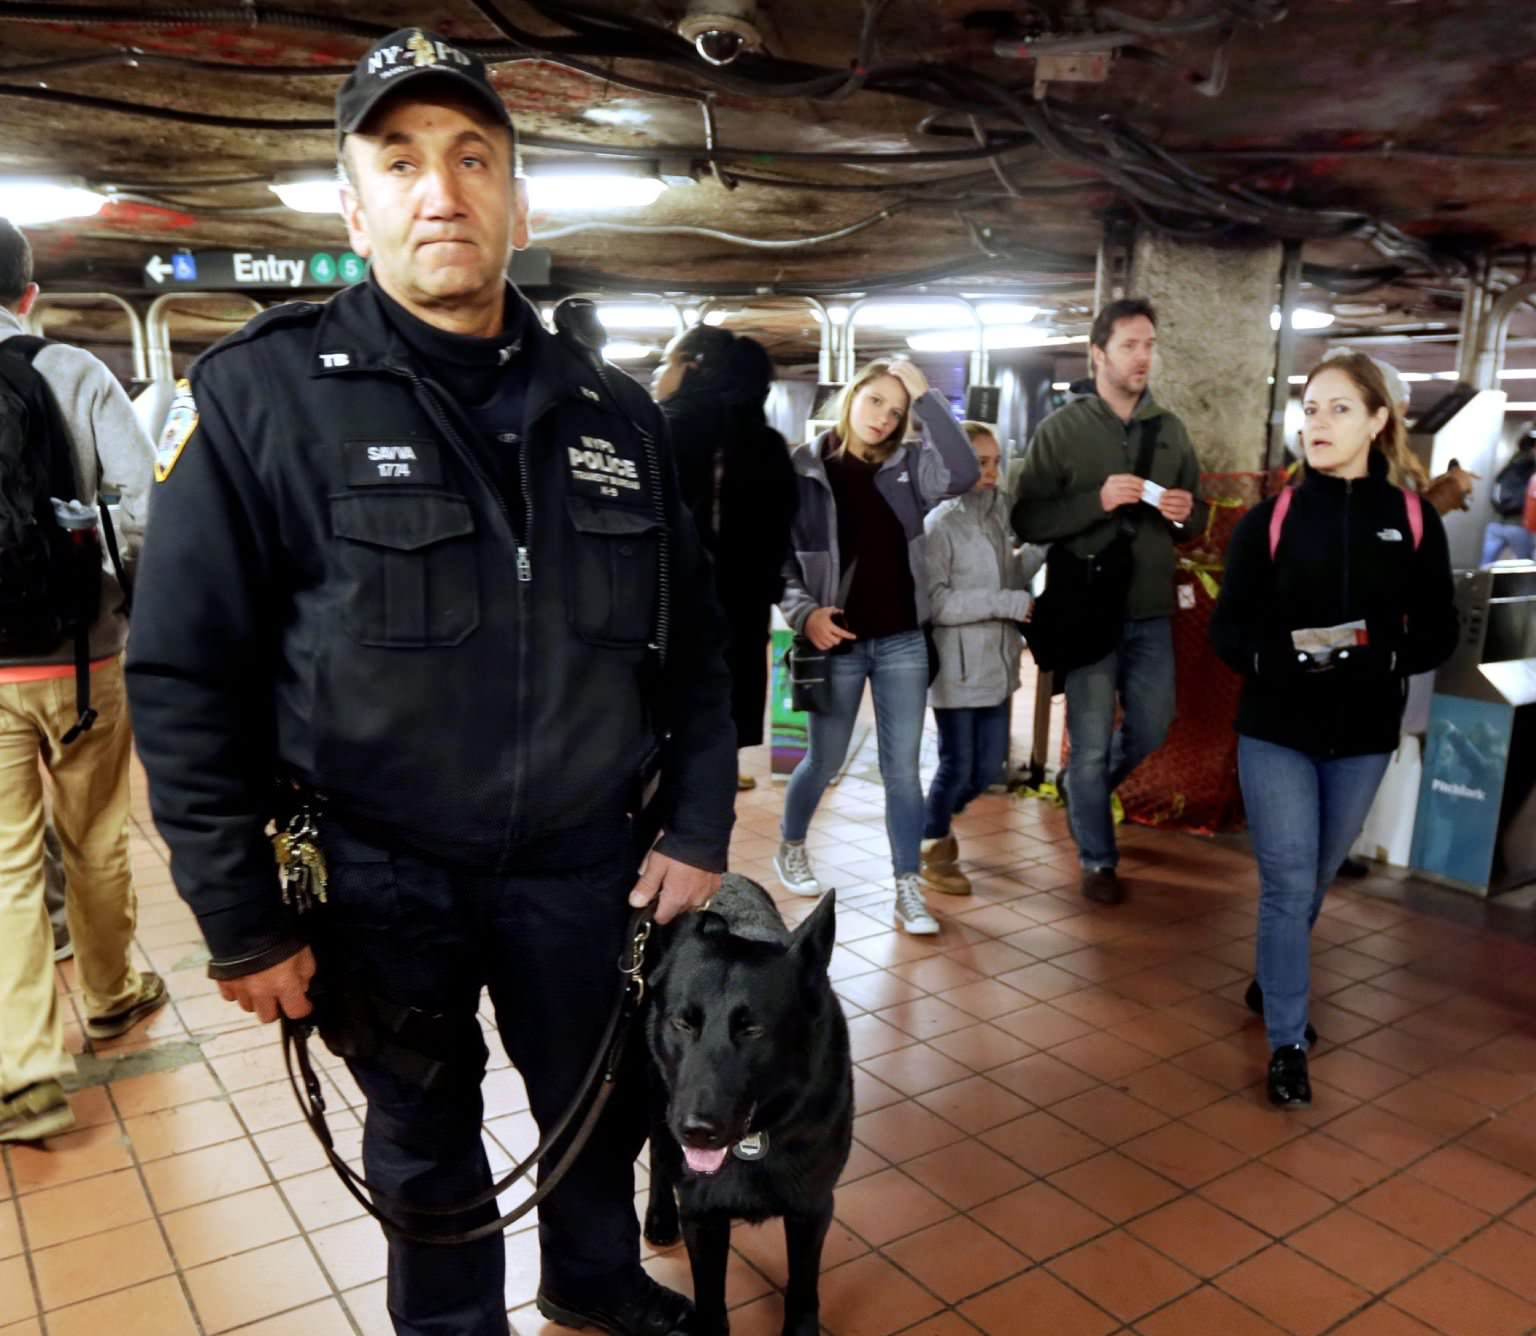 Dogs May Be the Best Line Of Defense Against Subway Attacks